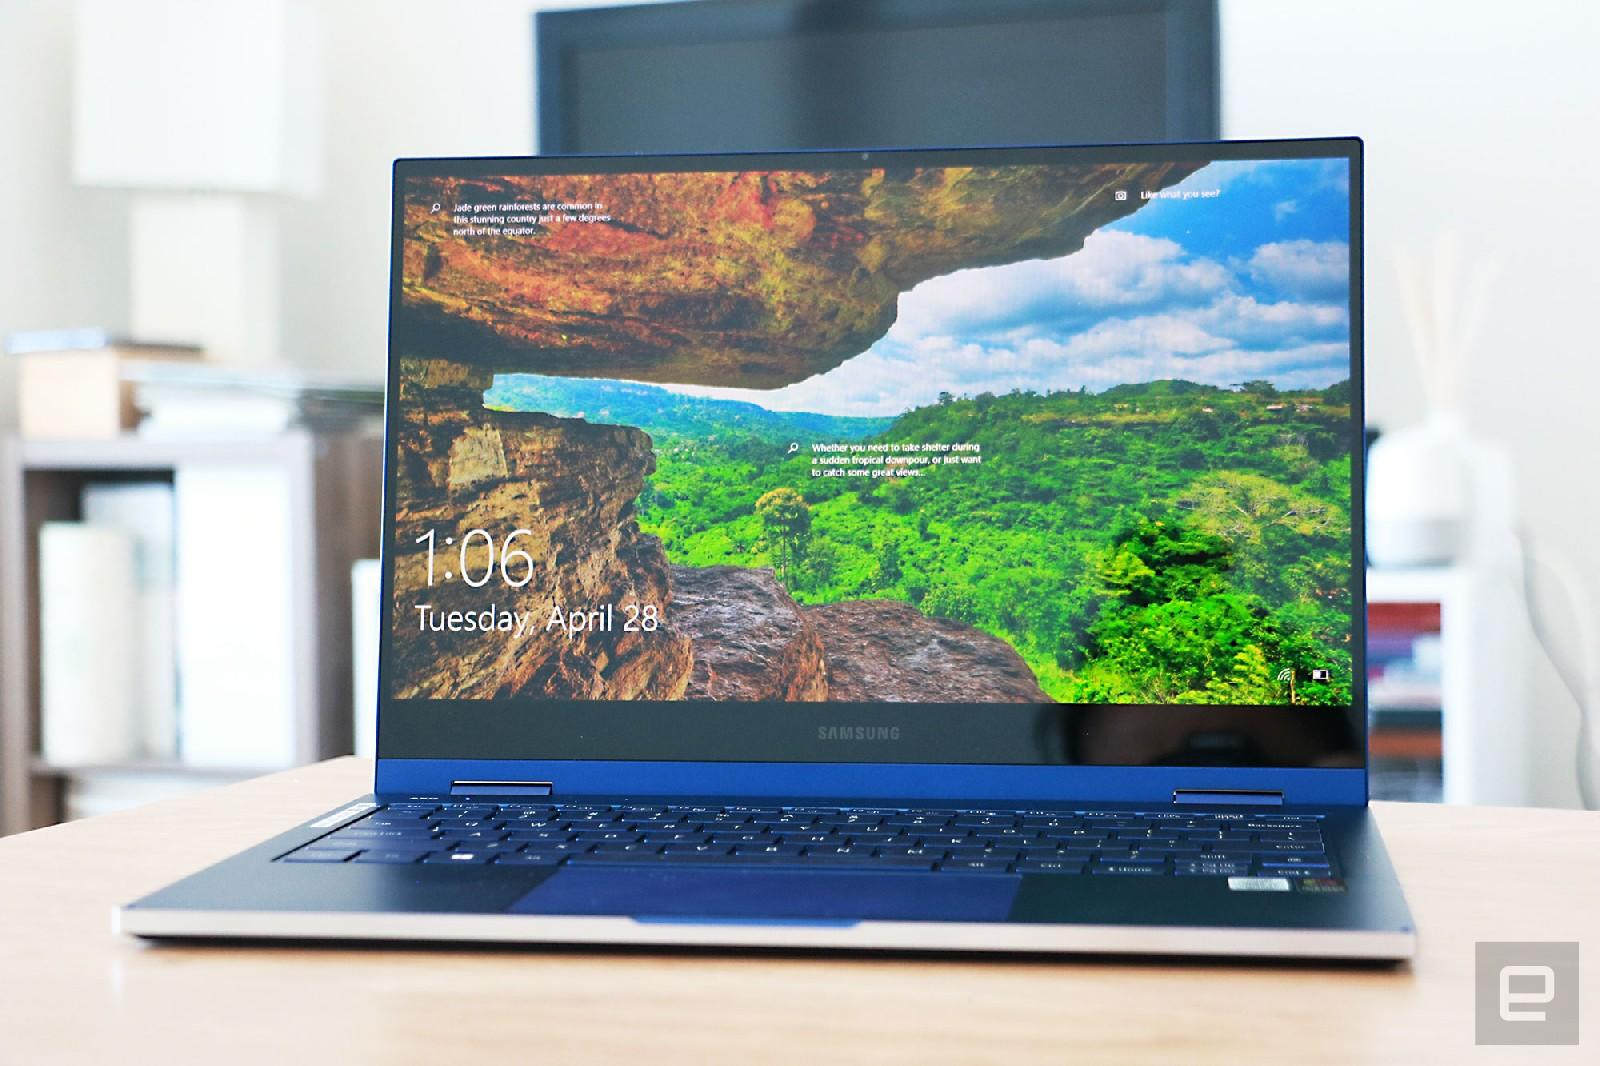 Galaxy Book Flex review: A pretty QLED laptop with a useful S Pen